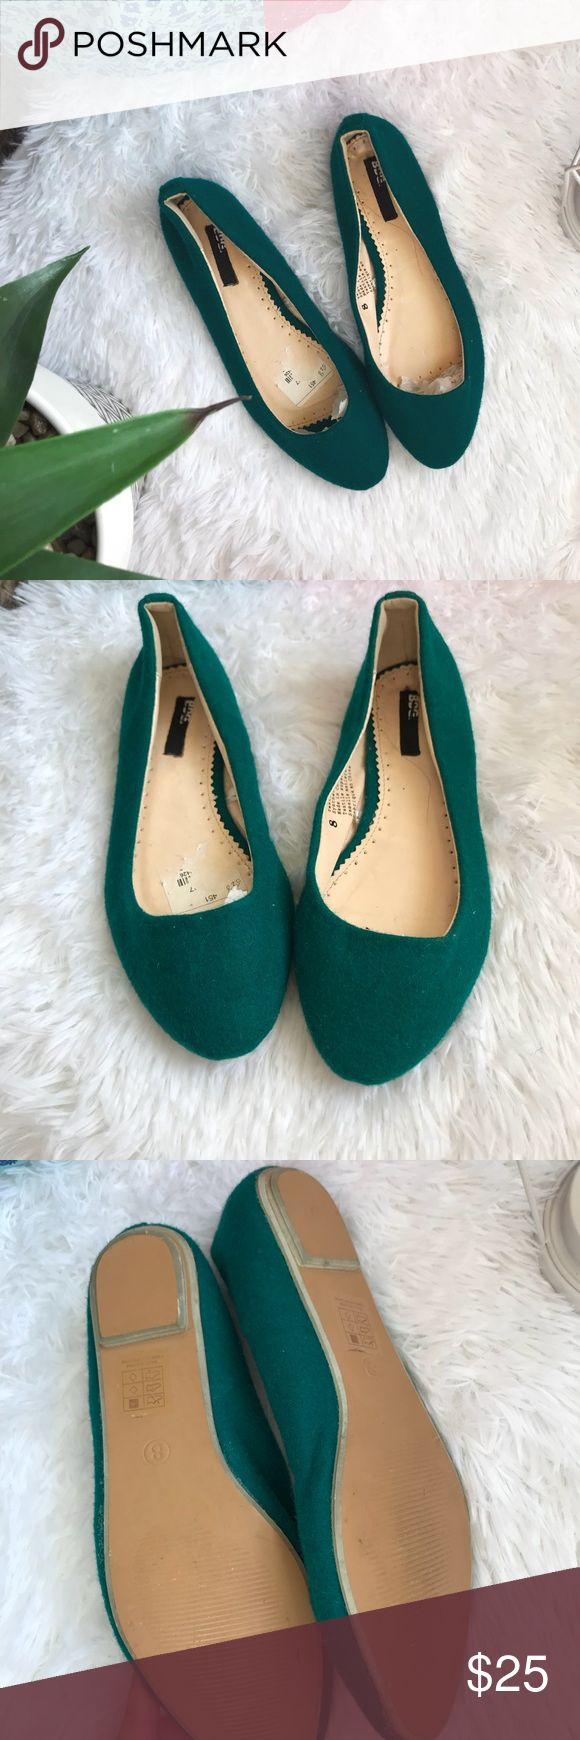 BDG pointed toe turquoise teal flats Lightly worn BDG pointed toe teal flats. Such a beautiful color for spring and summer BDG Shoes Flats & Loafers